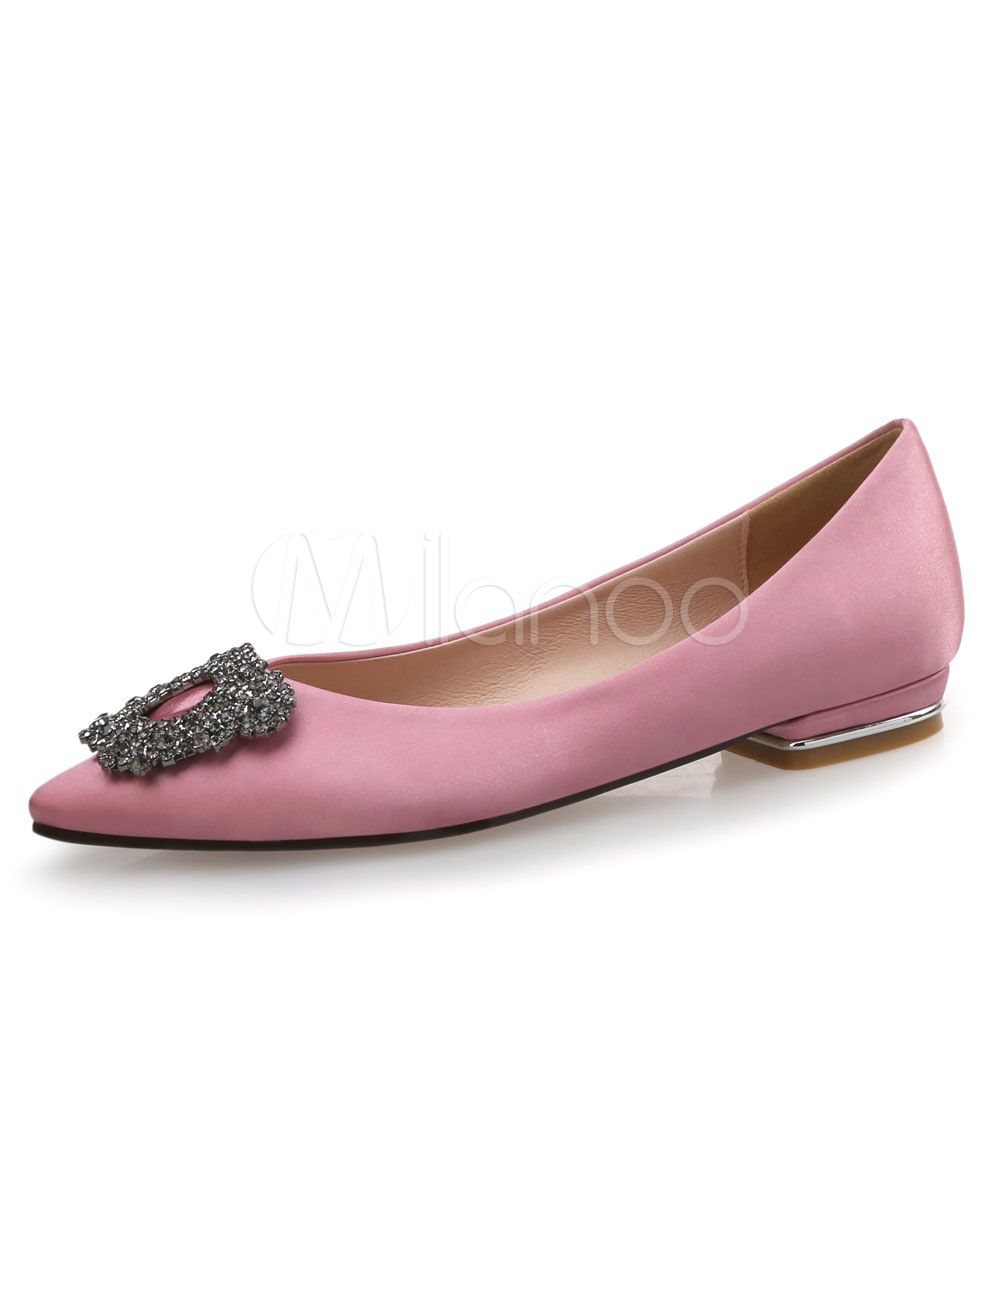 Buy Satin Ballet Flats Cameo Pink Pointed Toe Rhinestones Beaded Slip On Pumps for $37.99 in Milanoo store